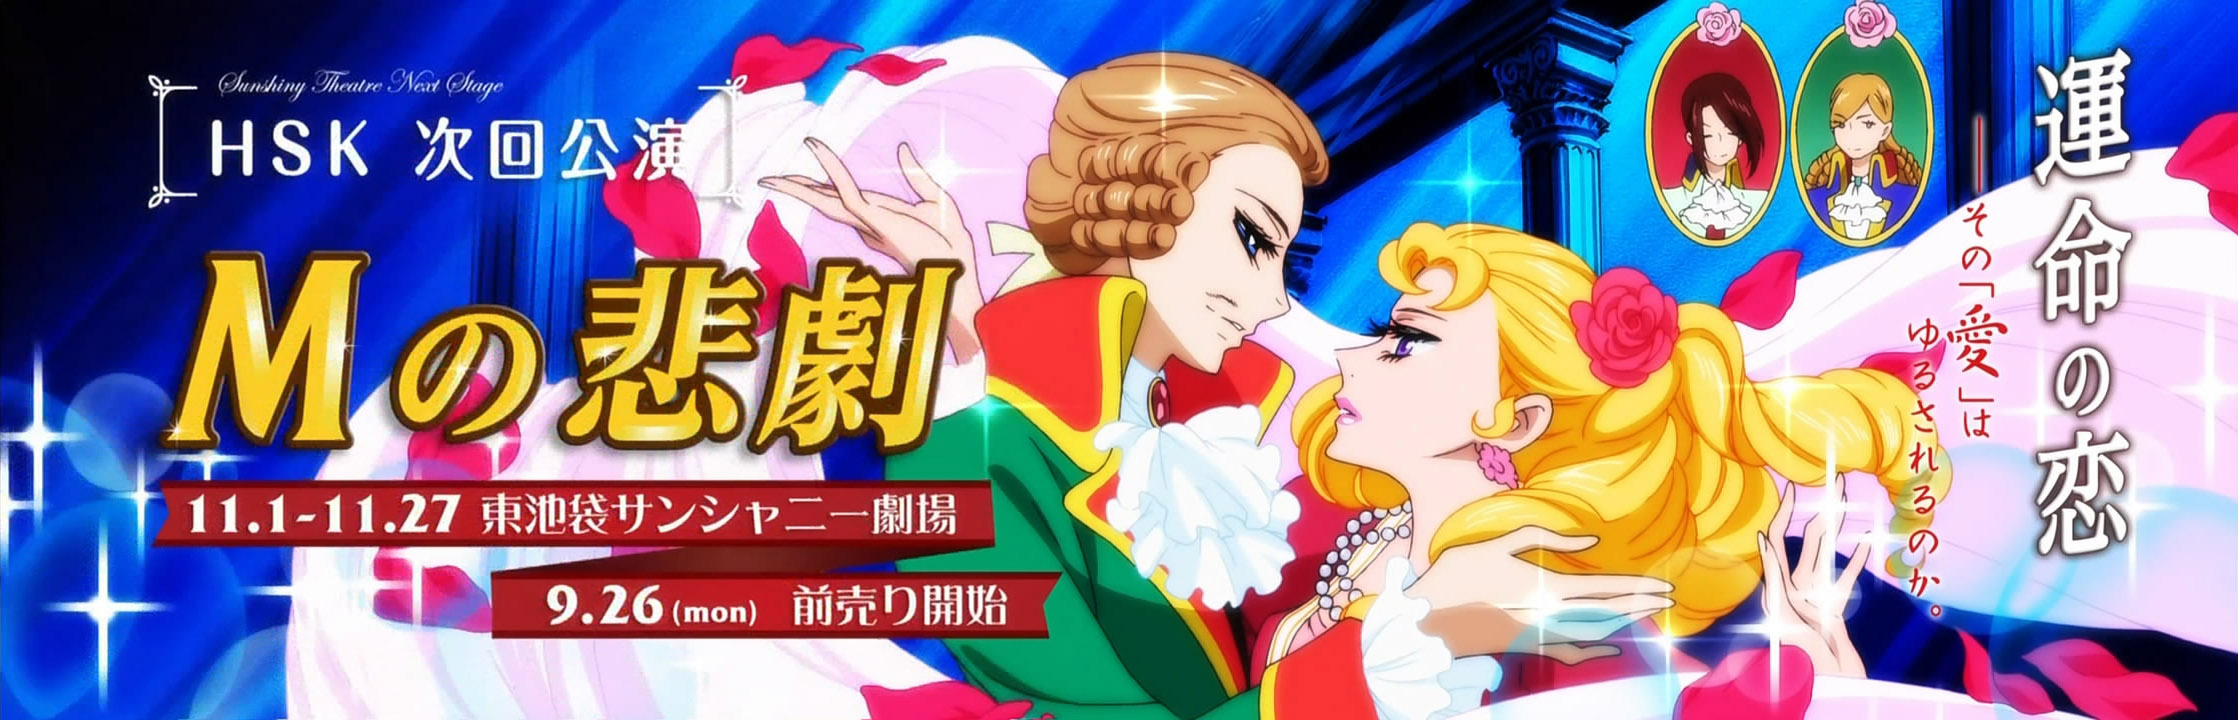 utena lesbian singles ( and in the case of revolutionary girl utena,  a japanese viewer at the tampa lgbt film fest said, flat out, that it did not seem lesbian to her, .